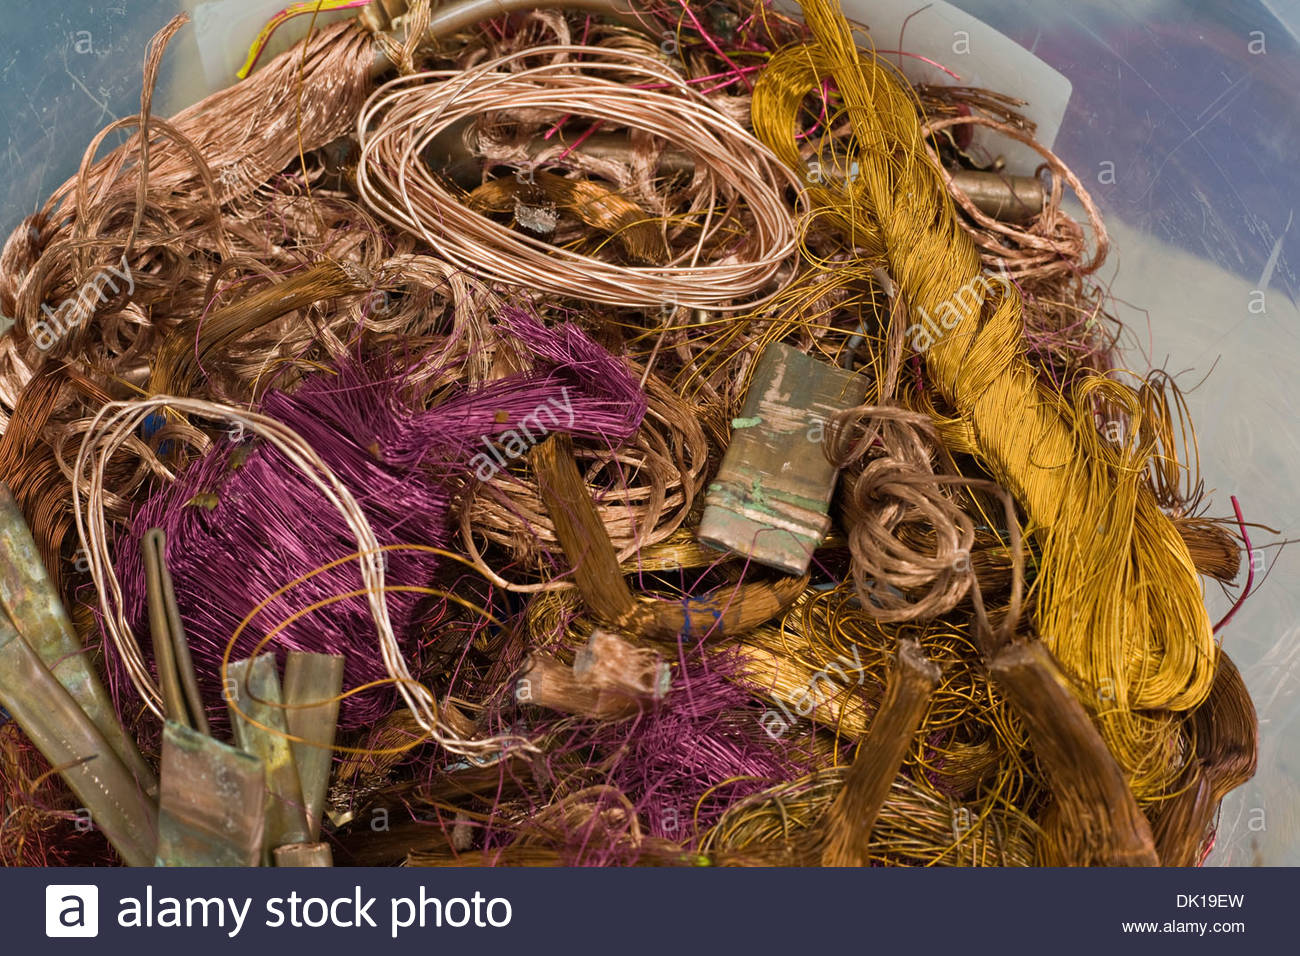 Copper Wire Stock Photos Images Alamy Scrap Harness Tubing In Plastic Container Image